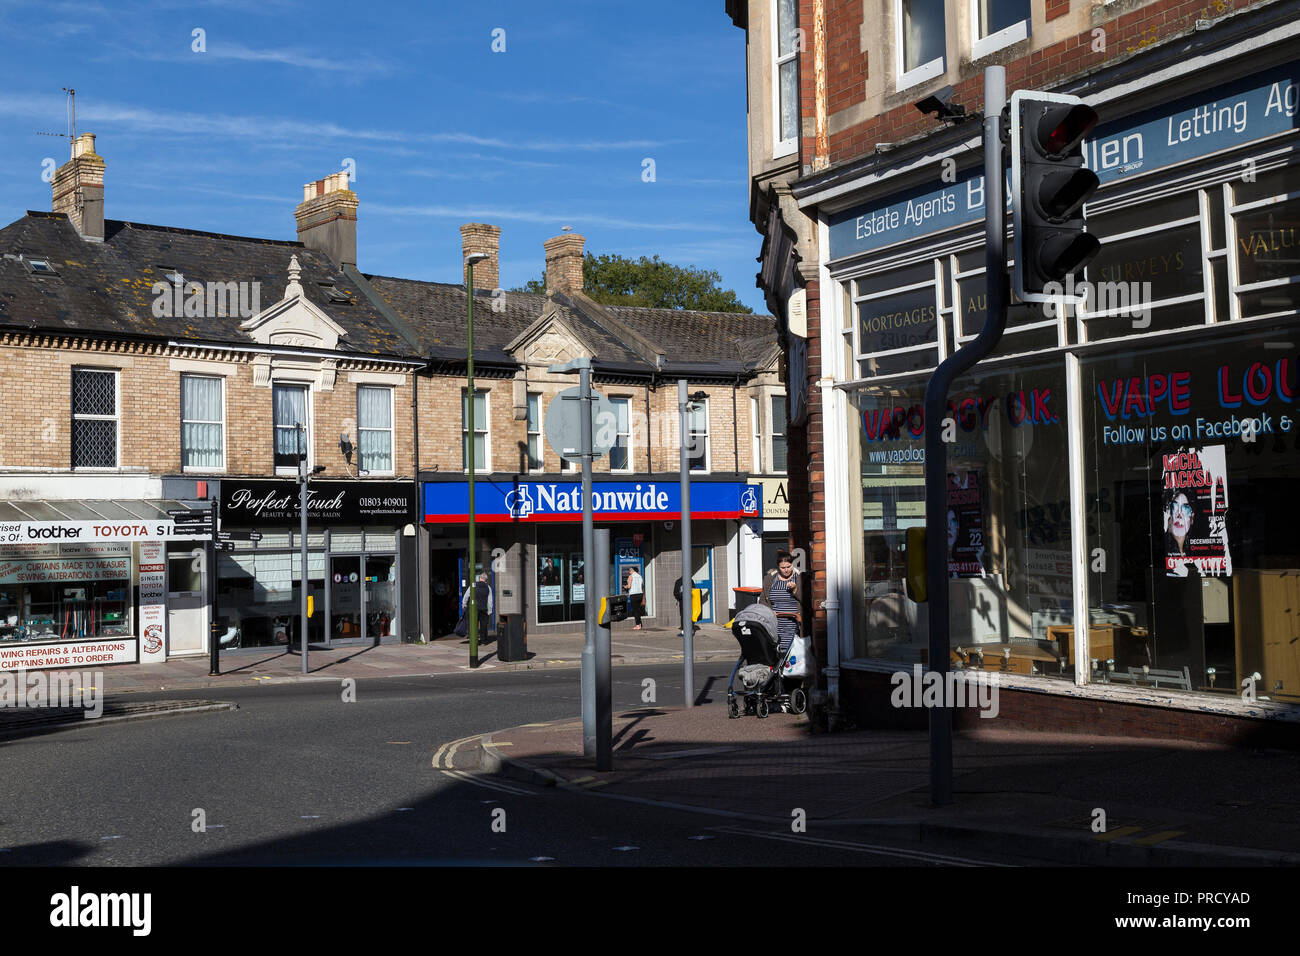 Nationwide Building Society is a British mutual financial institution and the largest building society,paignton Devon,high street, mutual, - Stock Image